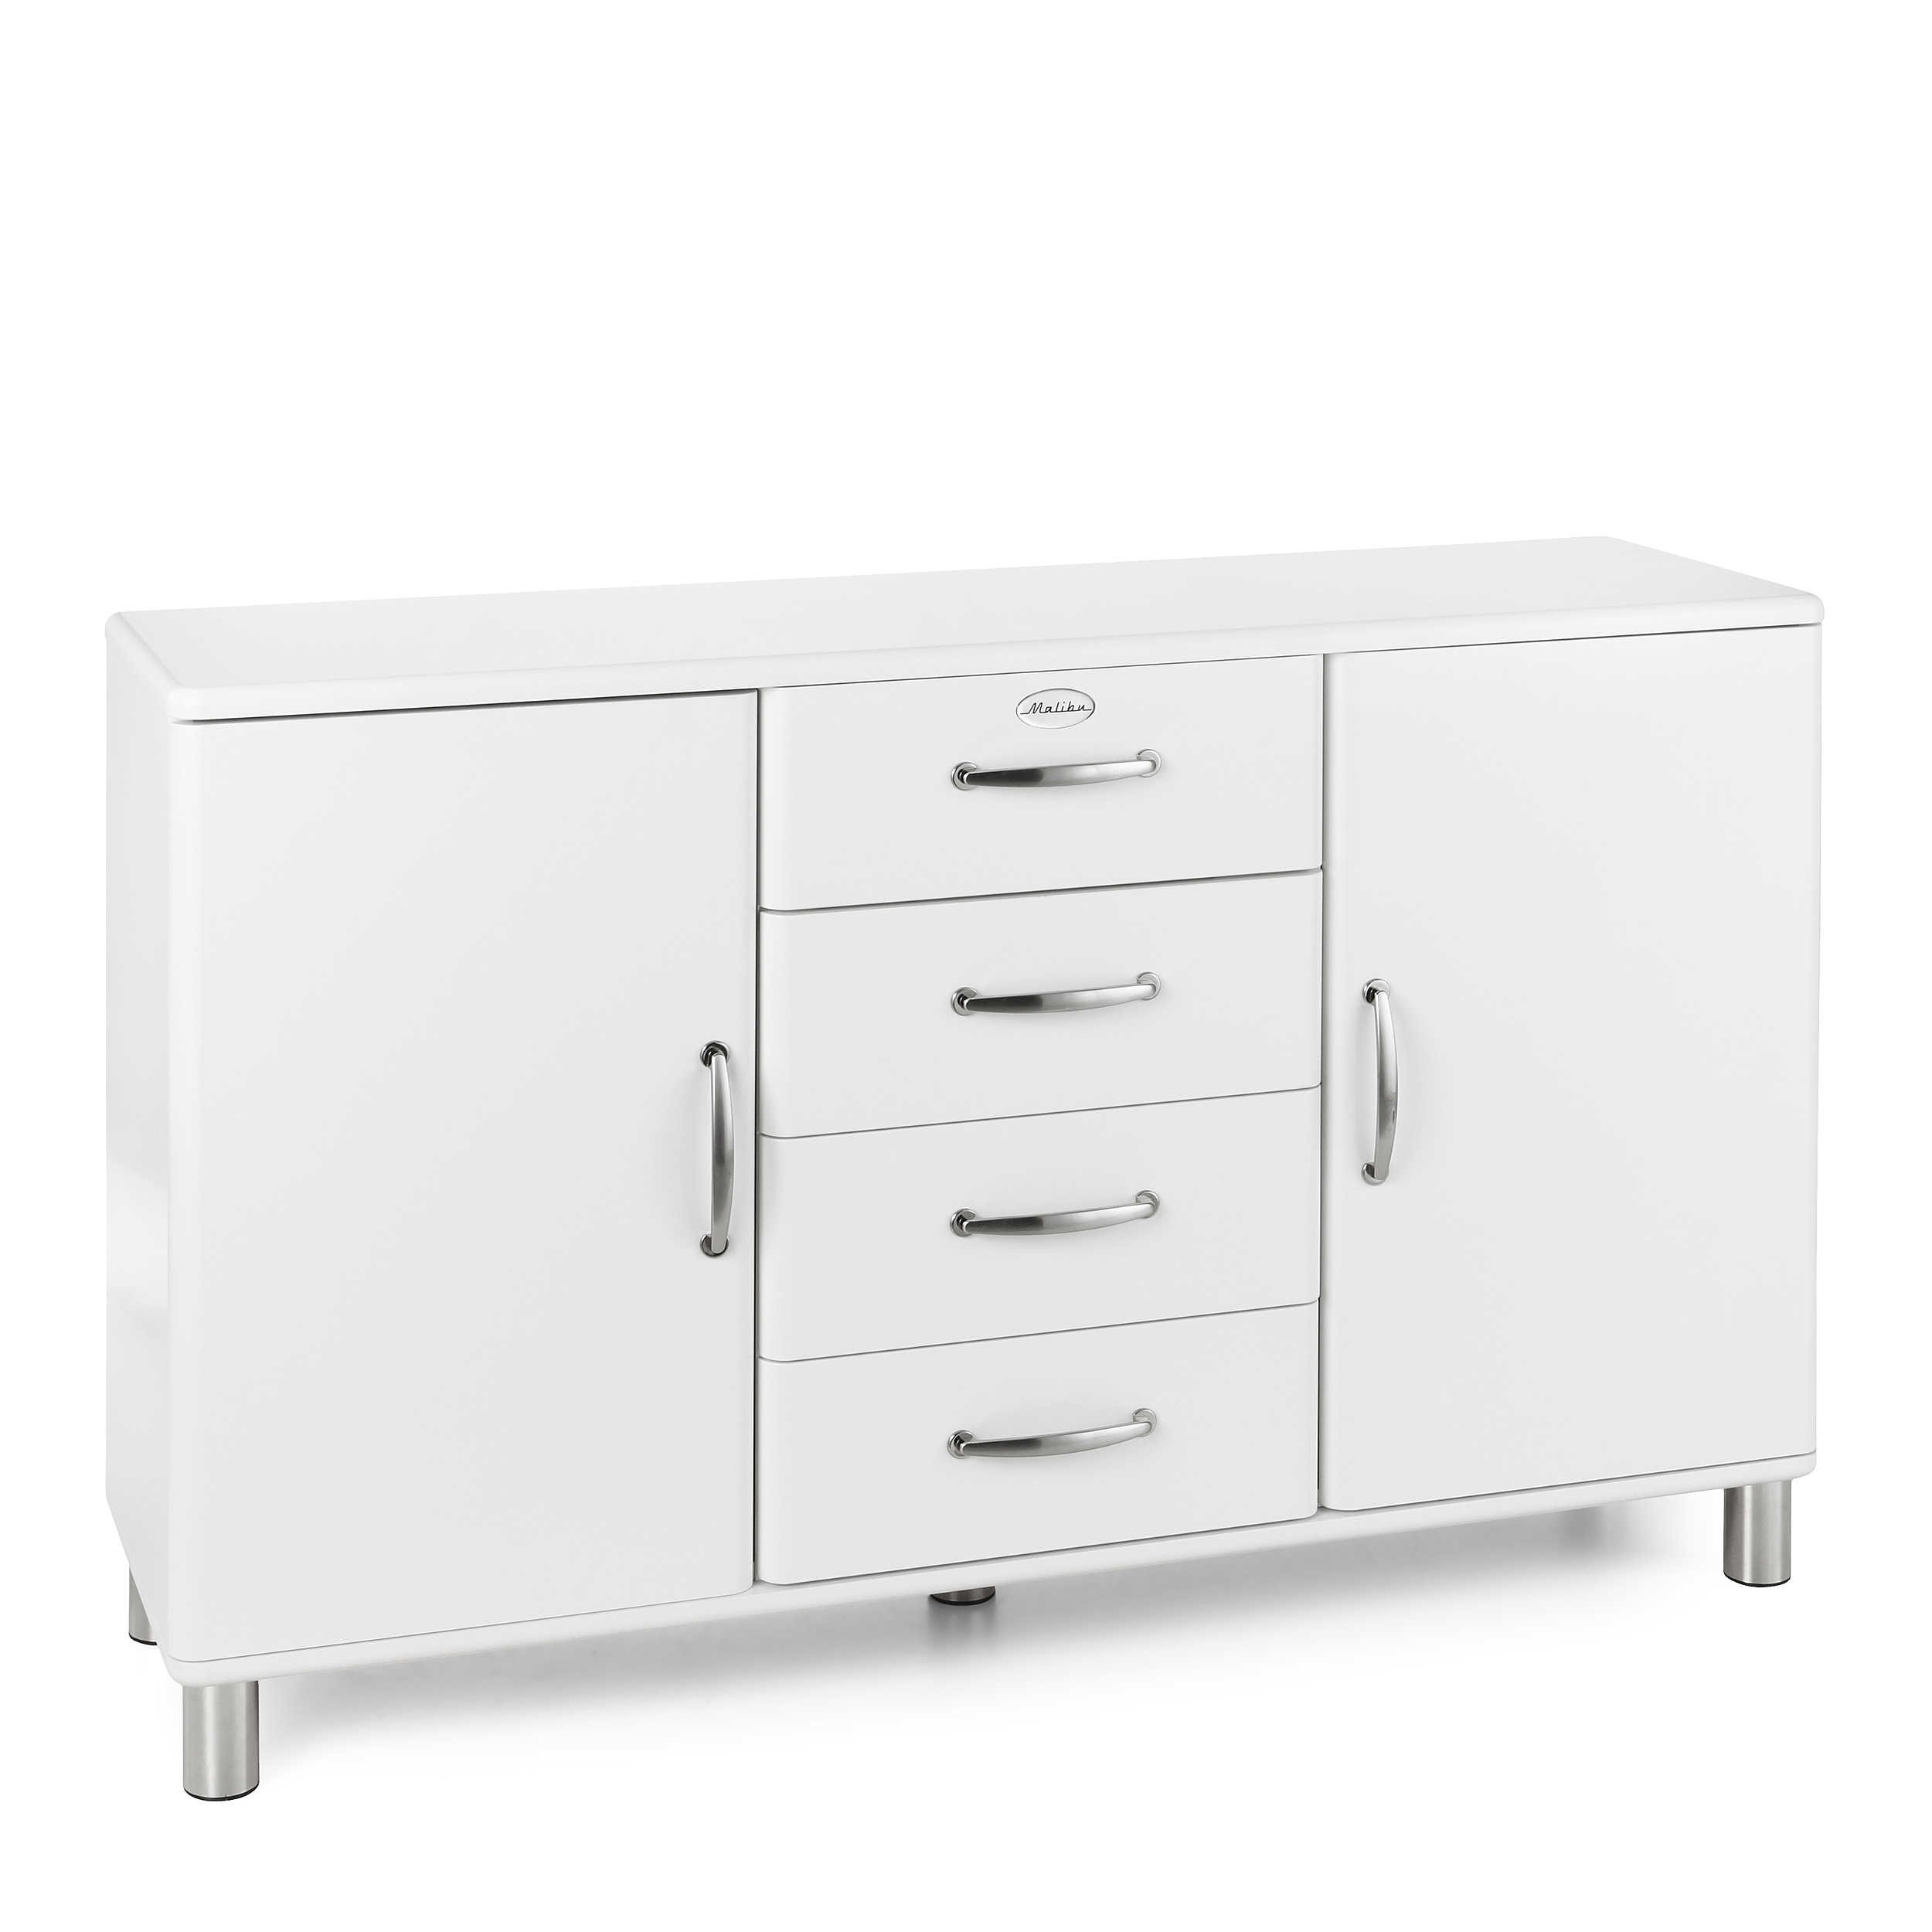 tenzo sideboard malibu wei lack hochglanz 146 cm online. Black Bedroom Furniture Sets. Home Design Ideas